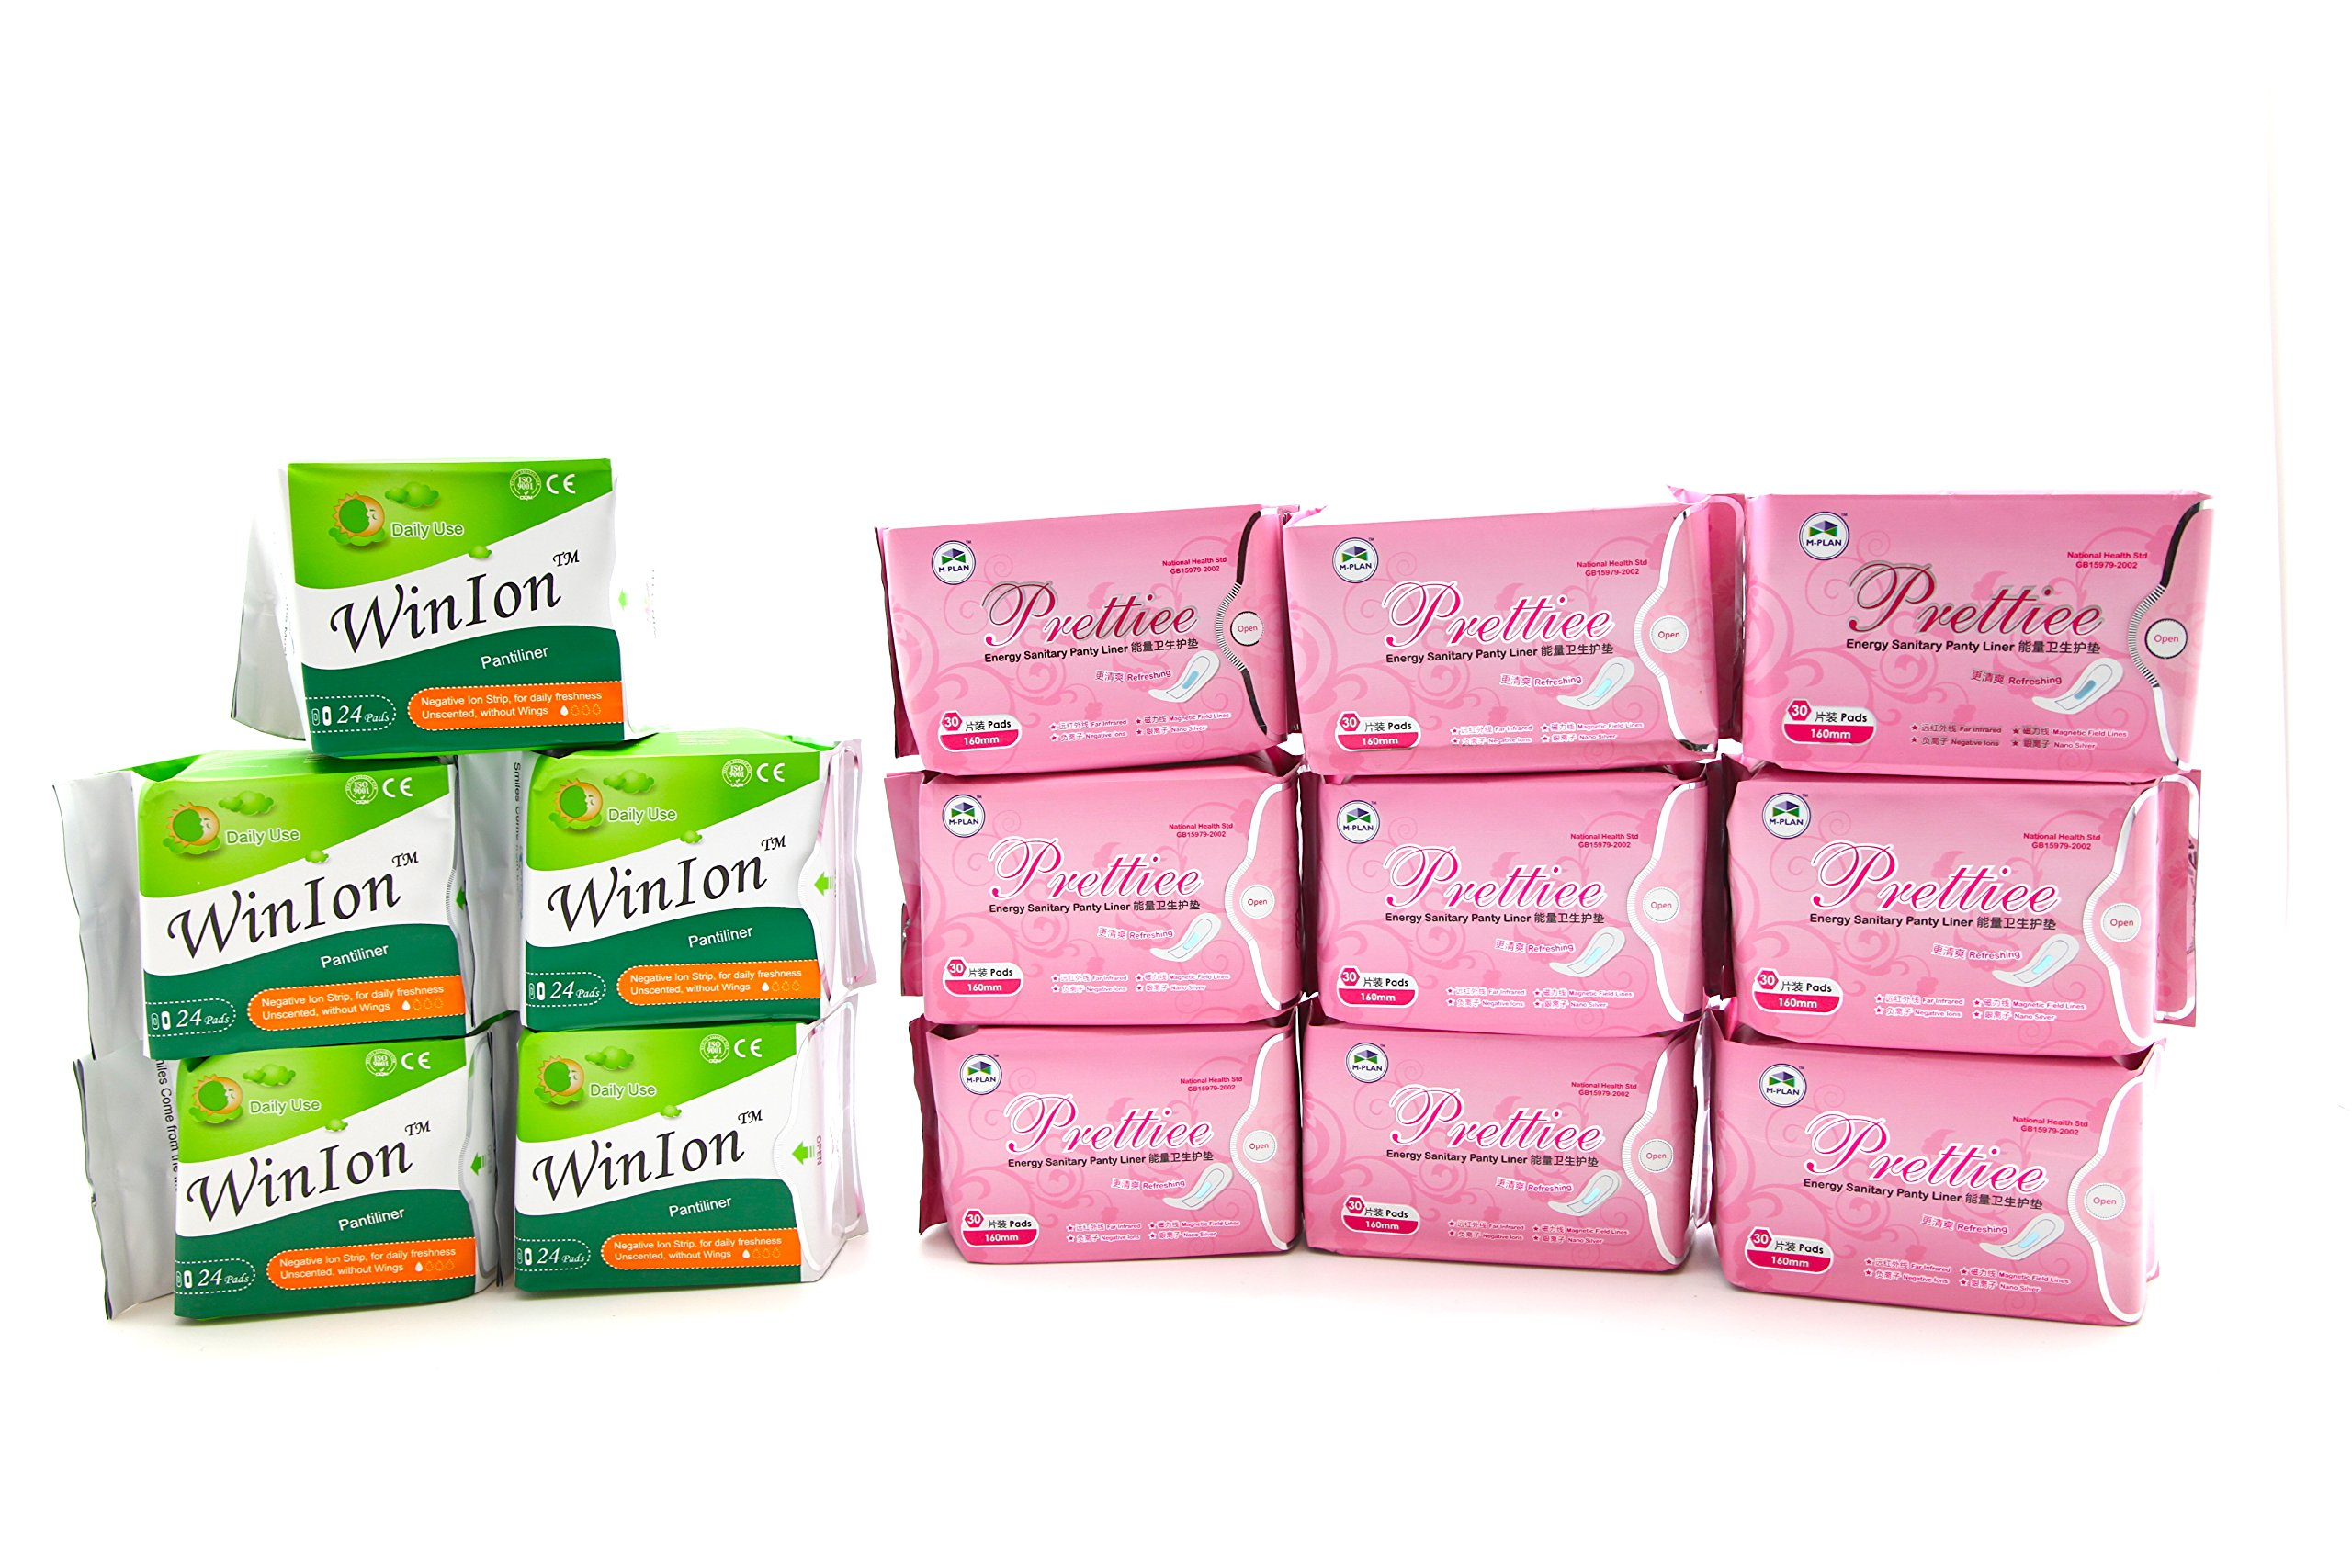 5 Pack Winalite Winion Anion Pantiliner With 9 Pack Prettie Energy Sanitary Panty Liner by Winalite (Image #1)